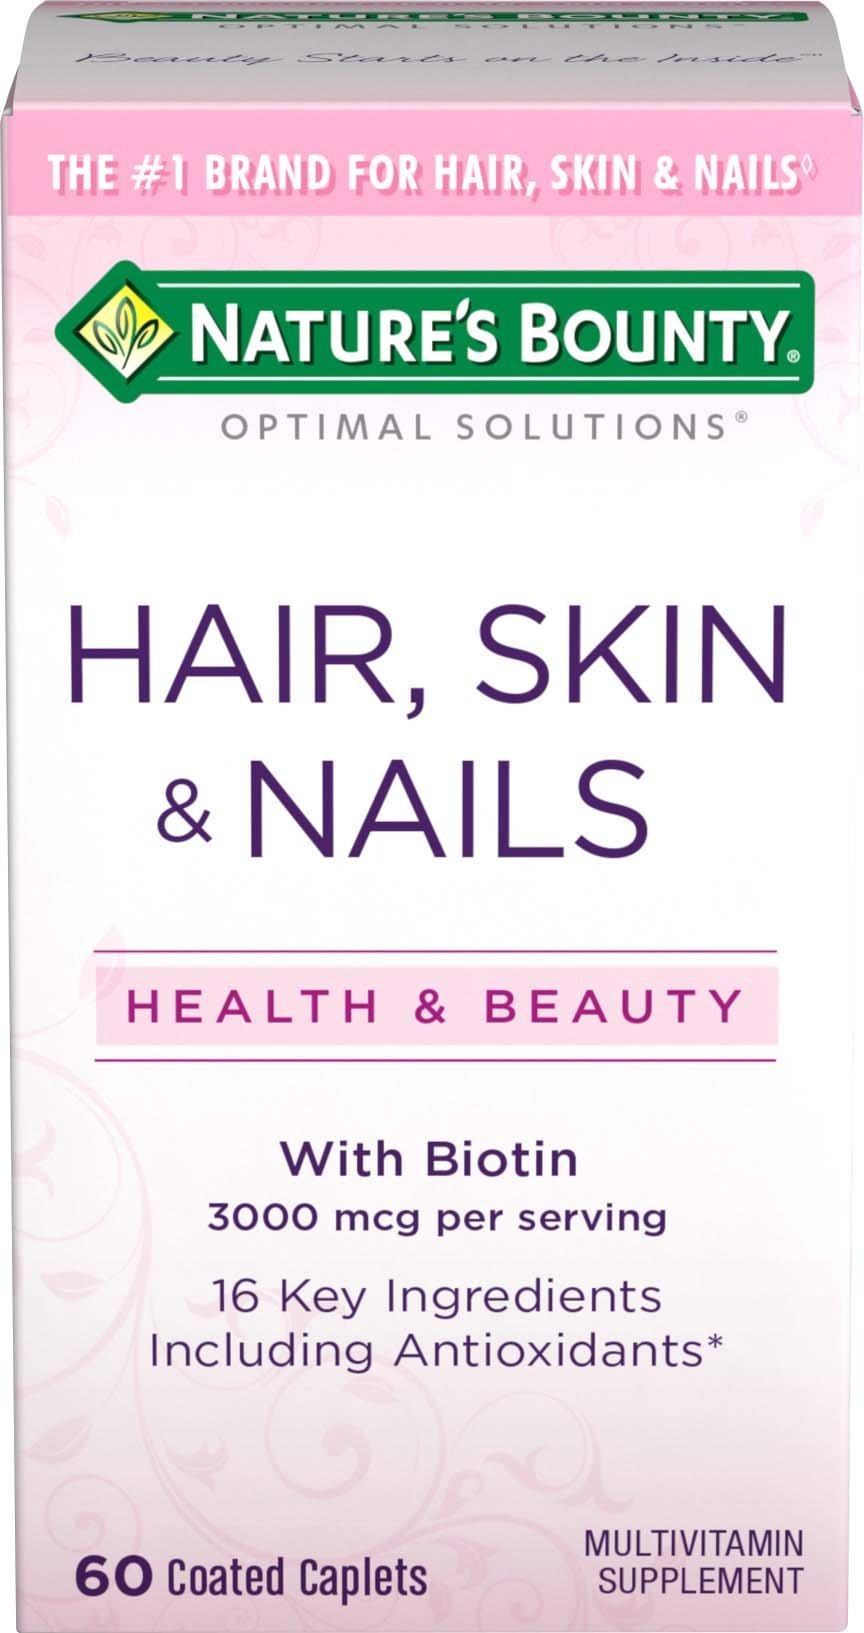 Nature's Bounty Optimal Solutions Hair, Skin & Nails Formula, 60 Coated Caplets